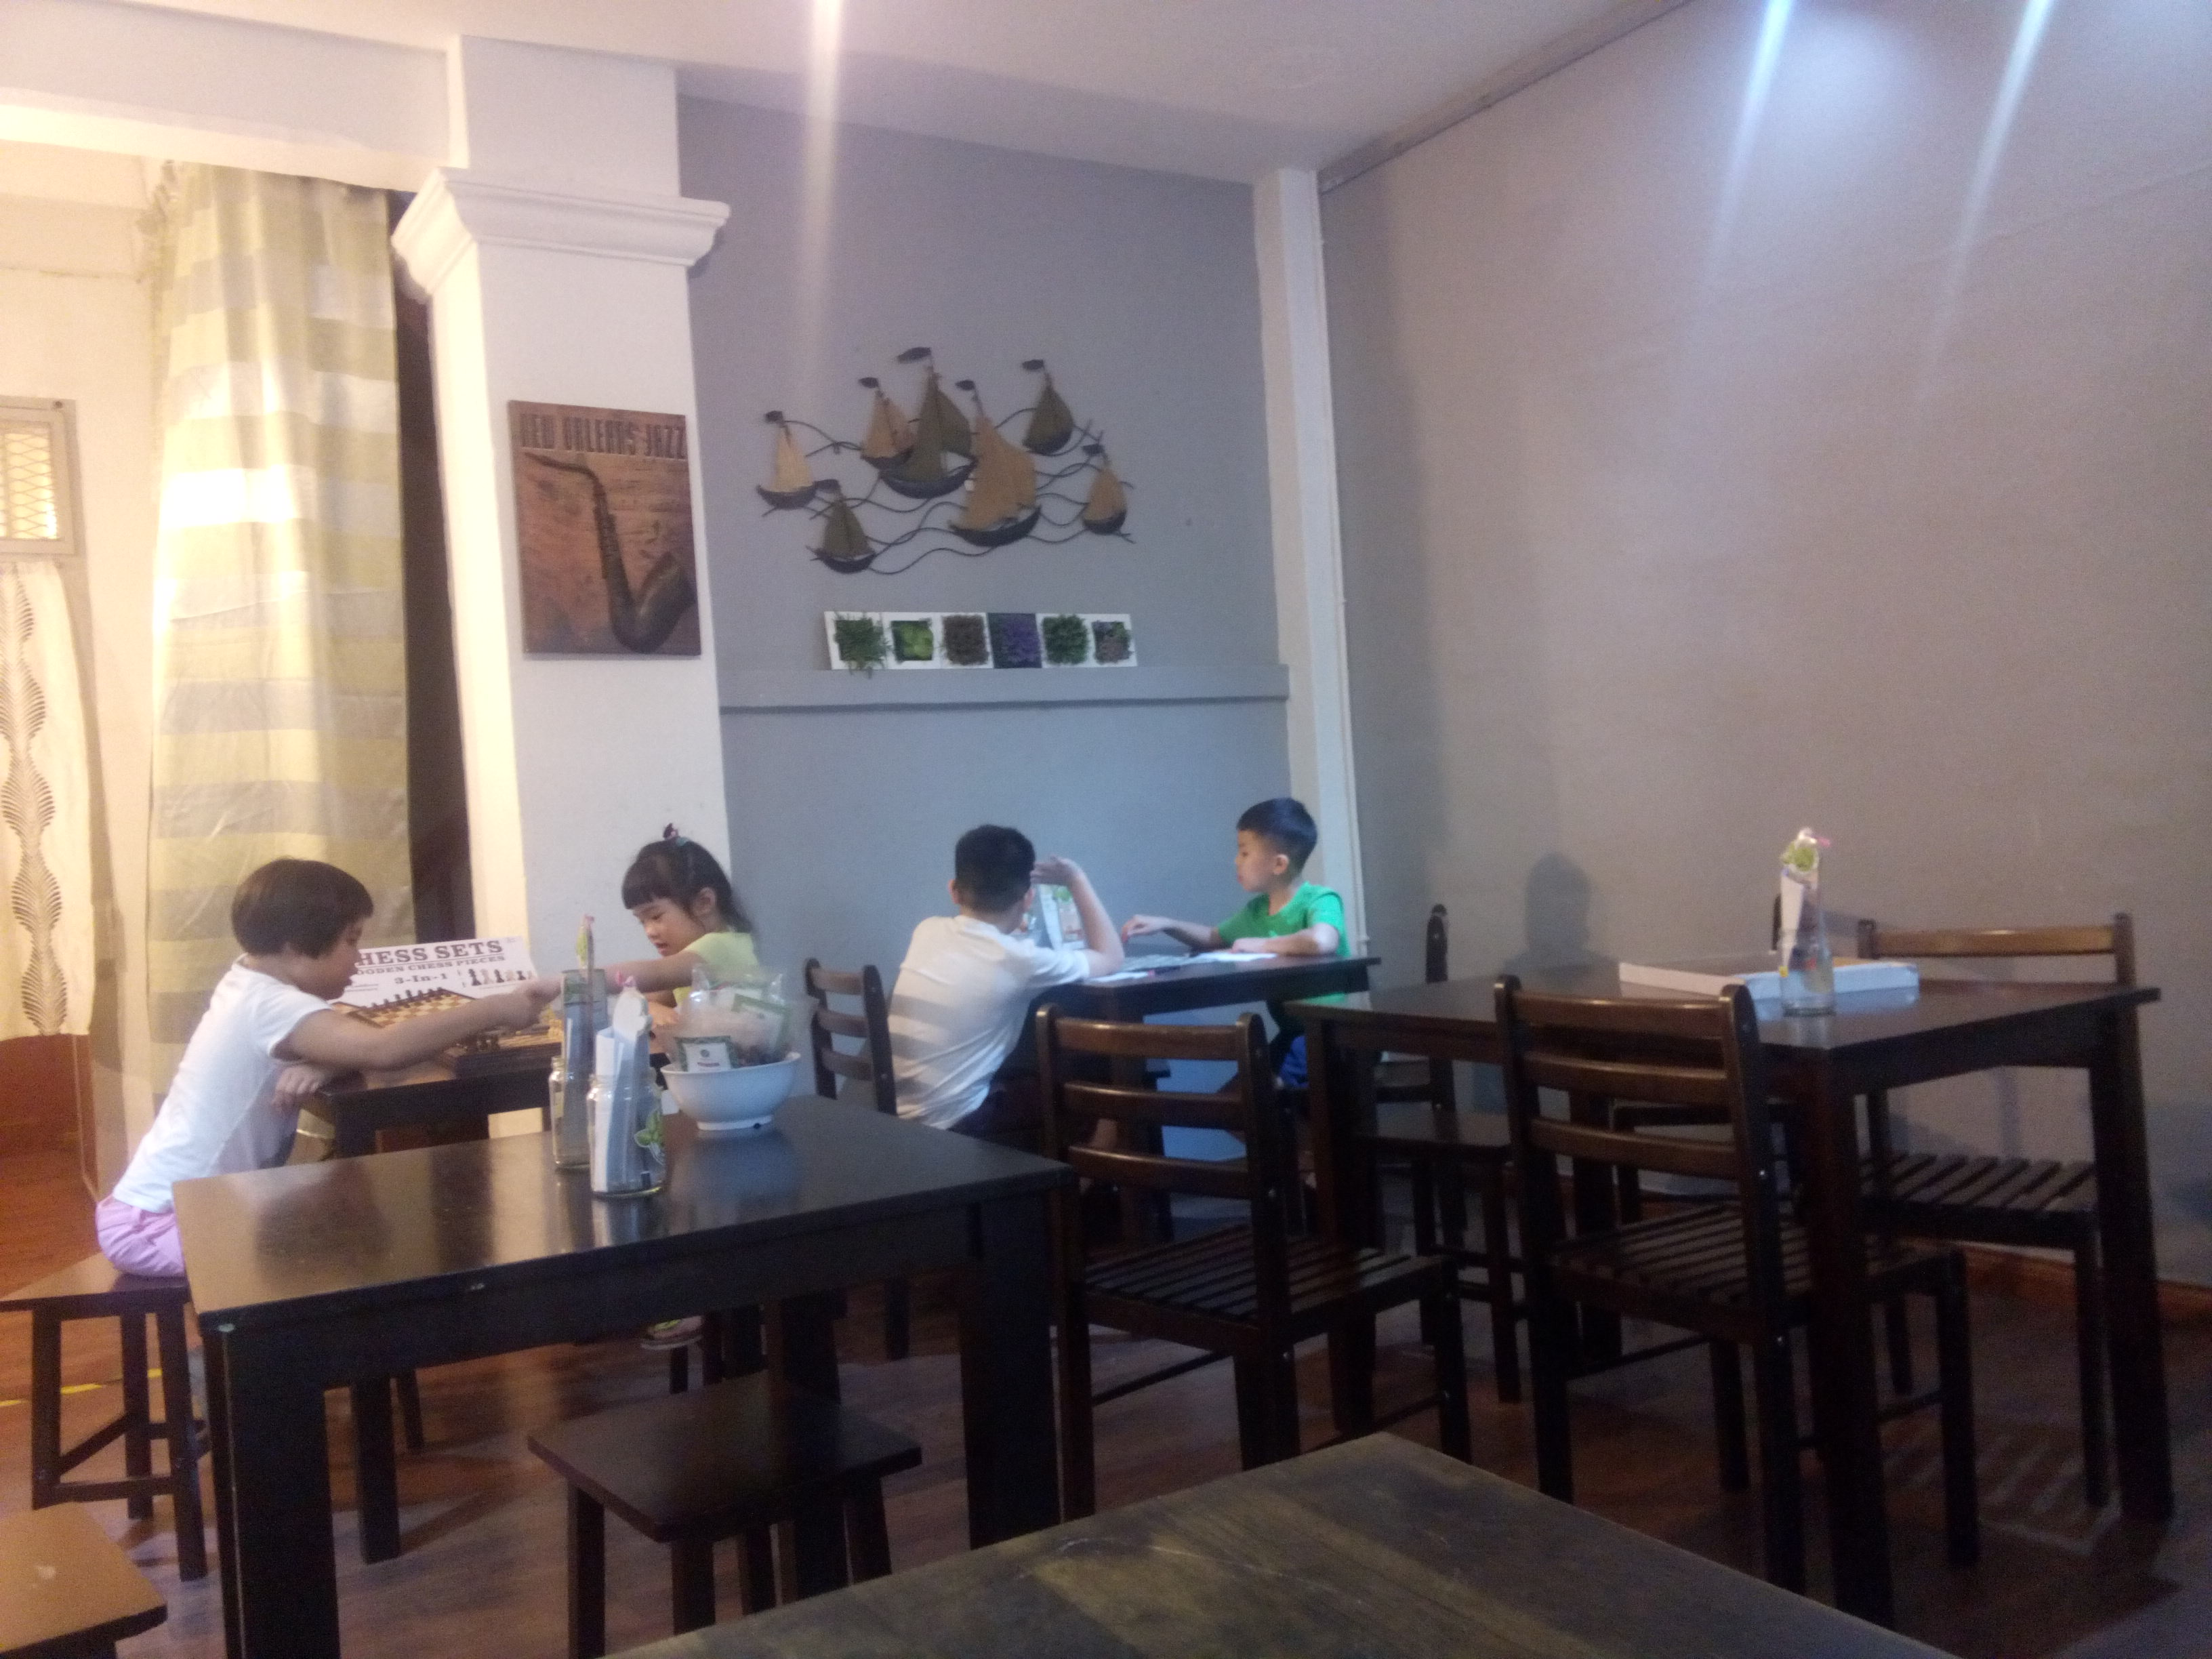 Kids sitting at tables in a restaurant